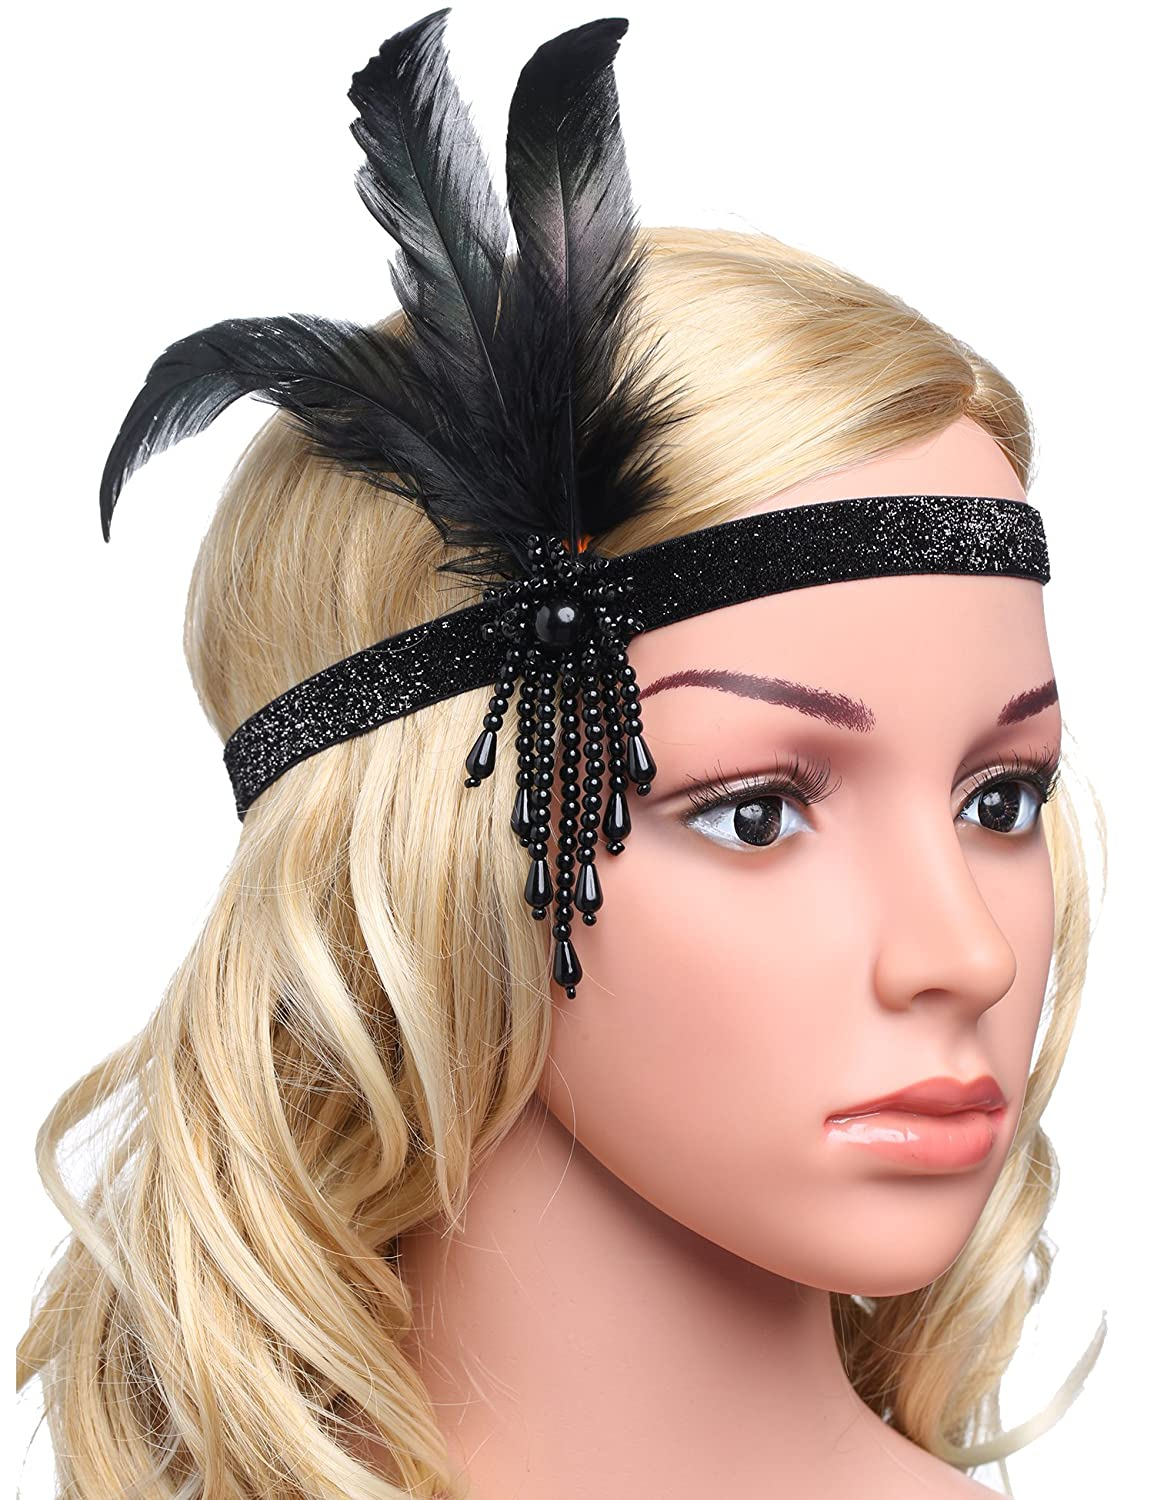 ArtiDeco 1920s Flapper Feather Headpiece Vintage 1920s Headband Beaded Flapper Headpiece Great Gatsby Costume Accessories